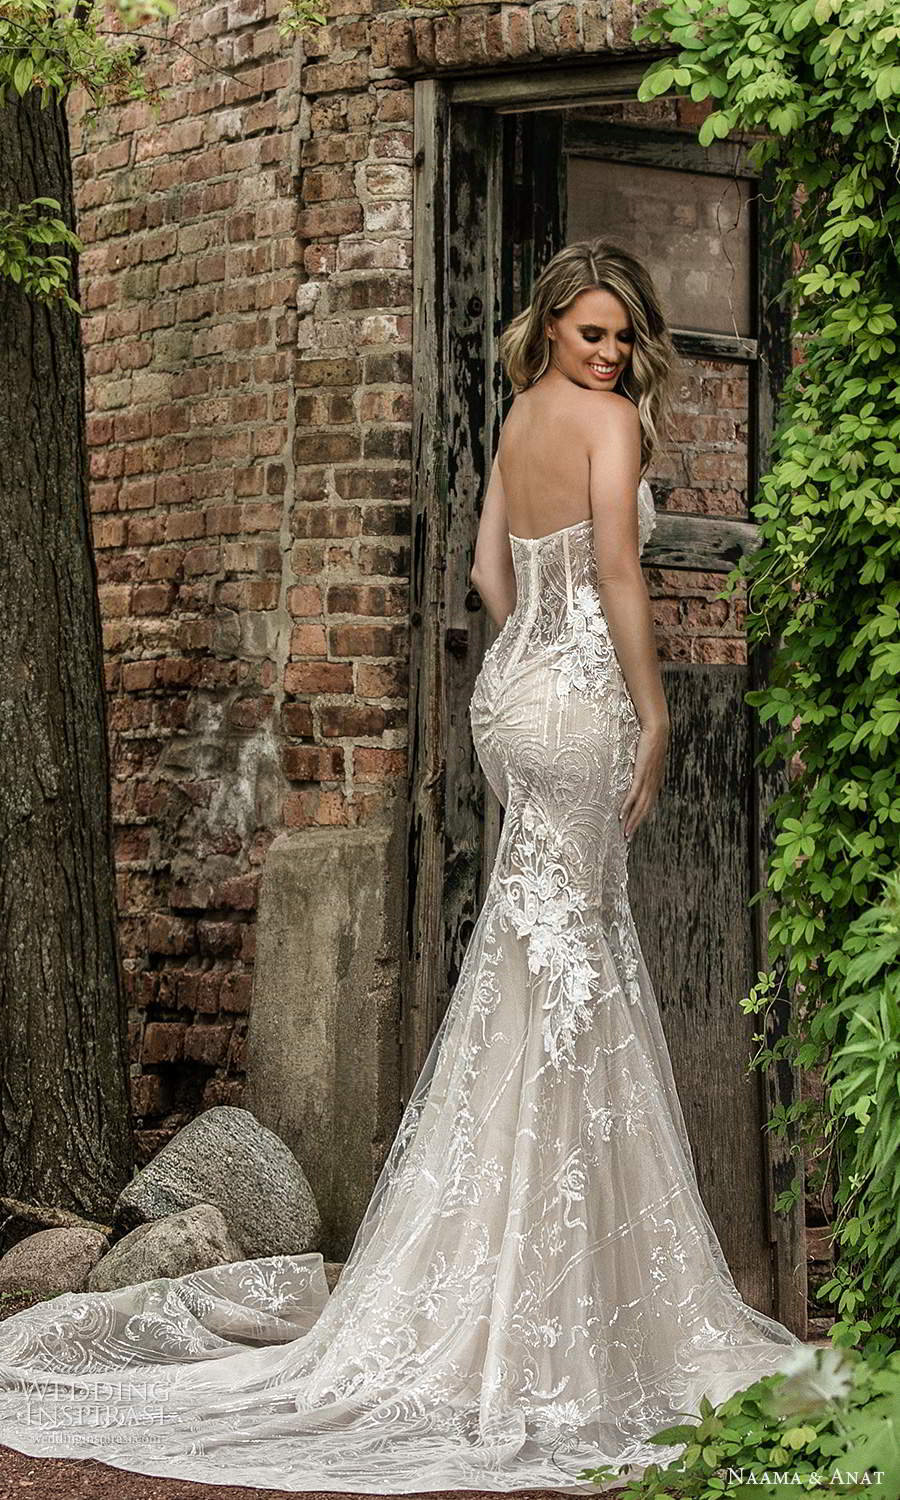 naama and anat 2021 bridal off shoulder sweetheart neckline fully embellished mermaid wedding dress a line ball gown overksirt oatmeal chapel train (4) bv